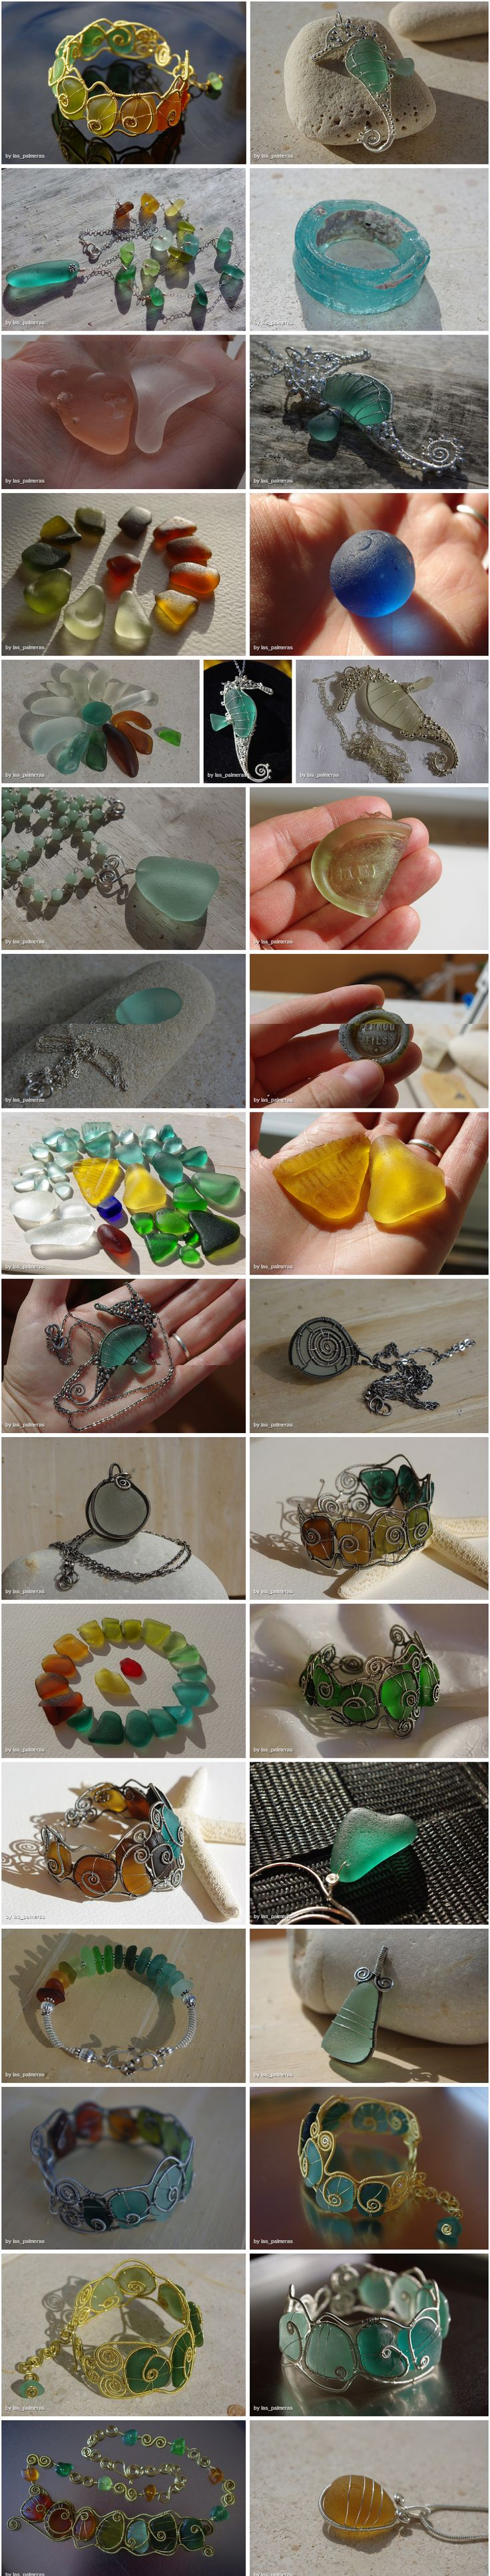 Seaglass & Wire Bangles and other jewelry by Las Palmeras (pics only)